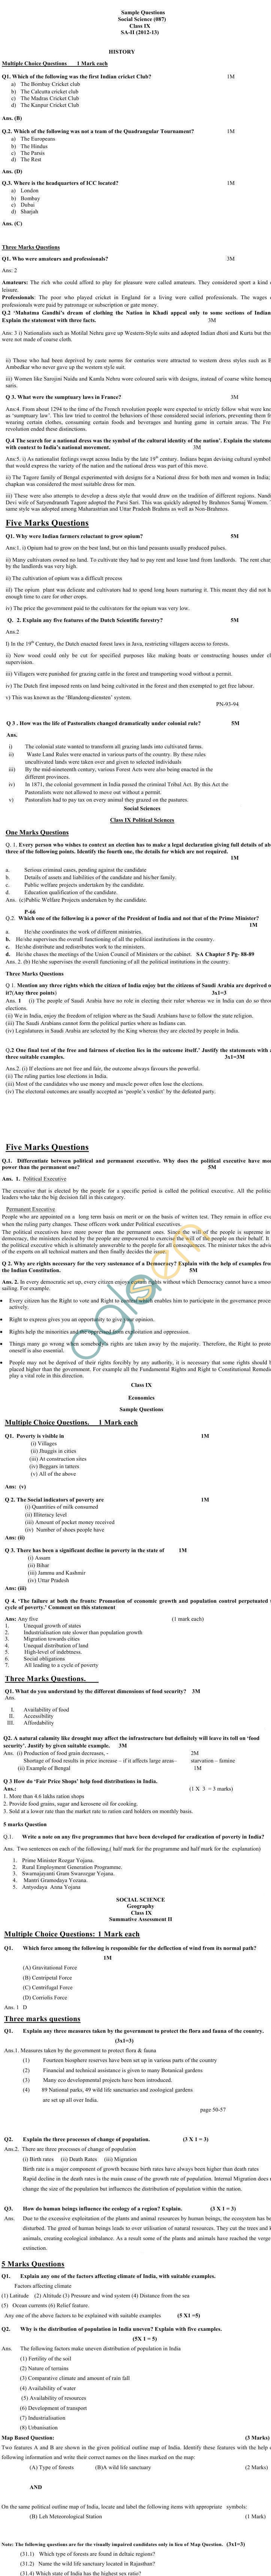 CBSE Board Exam Sample Papers (SA2) Class IX - Social Science